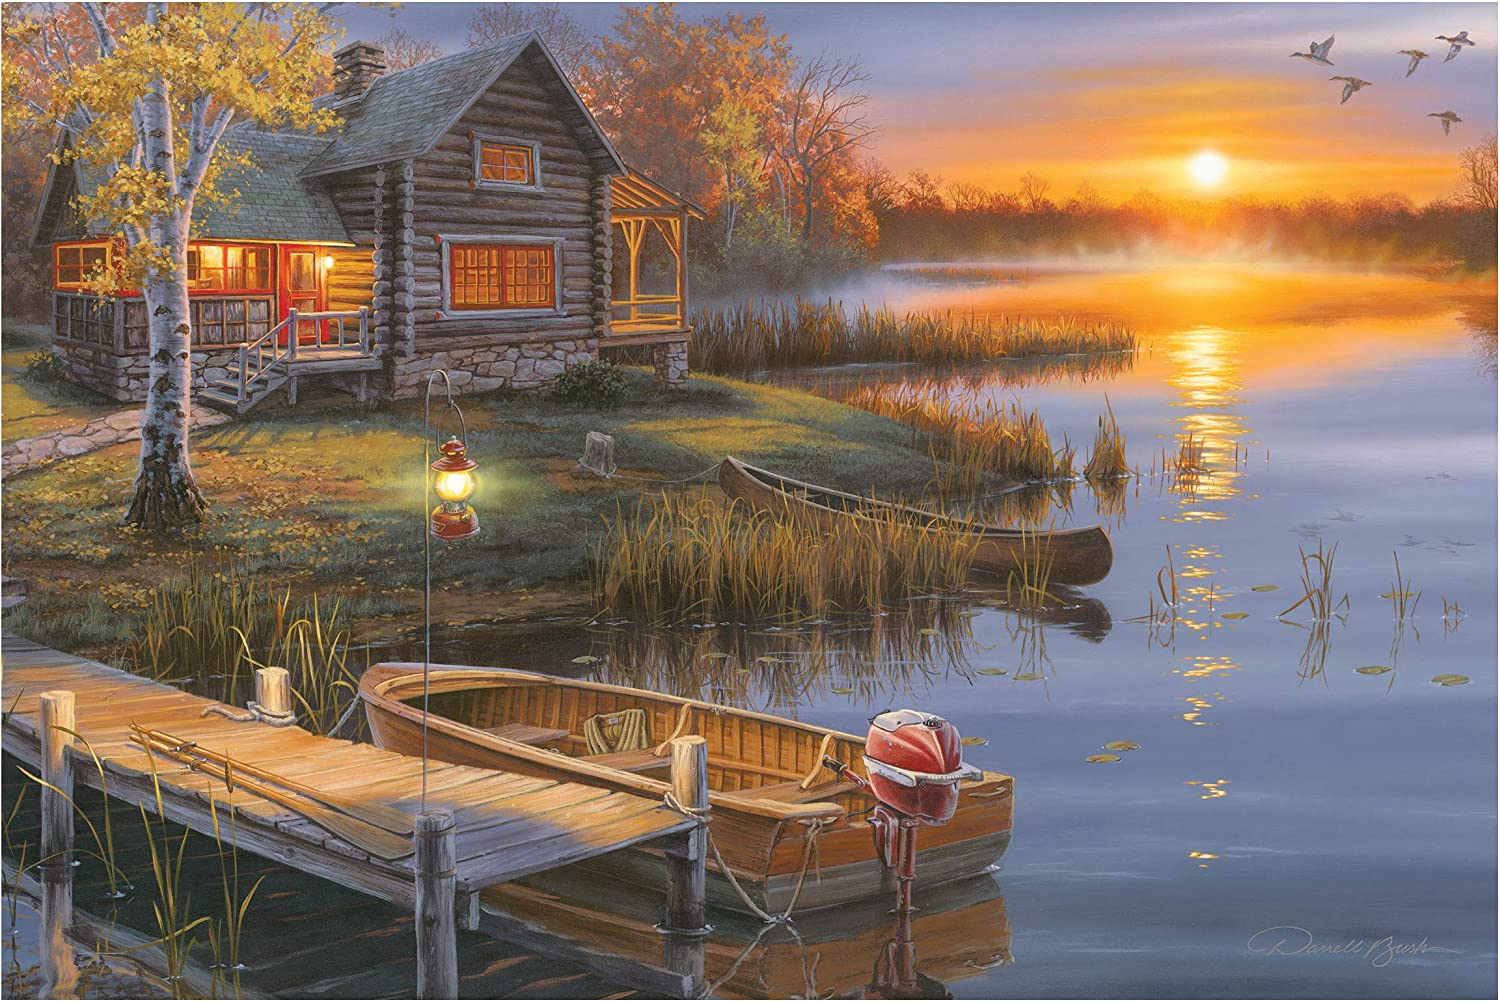 River's Edge Products LED Art 24in x 16in - Lake Cabin